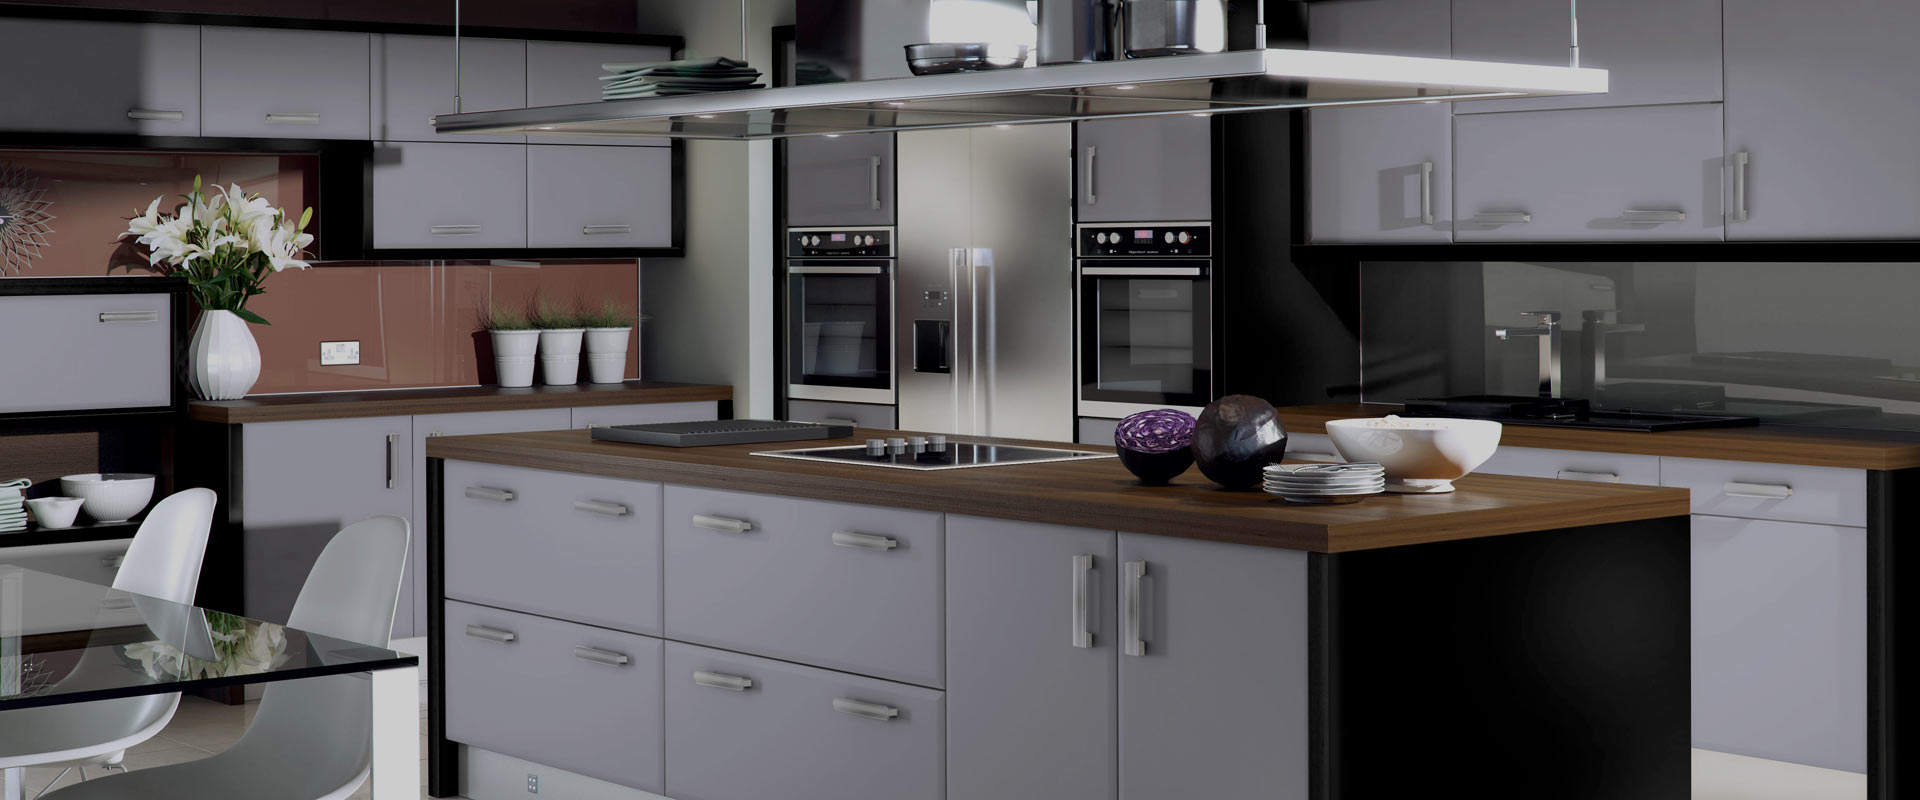 Budget-Kitchens-Dove-Grey-Hapton-style-kitchen